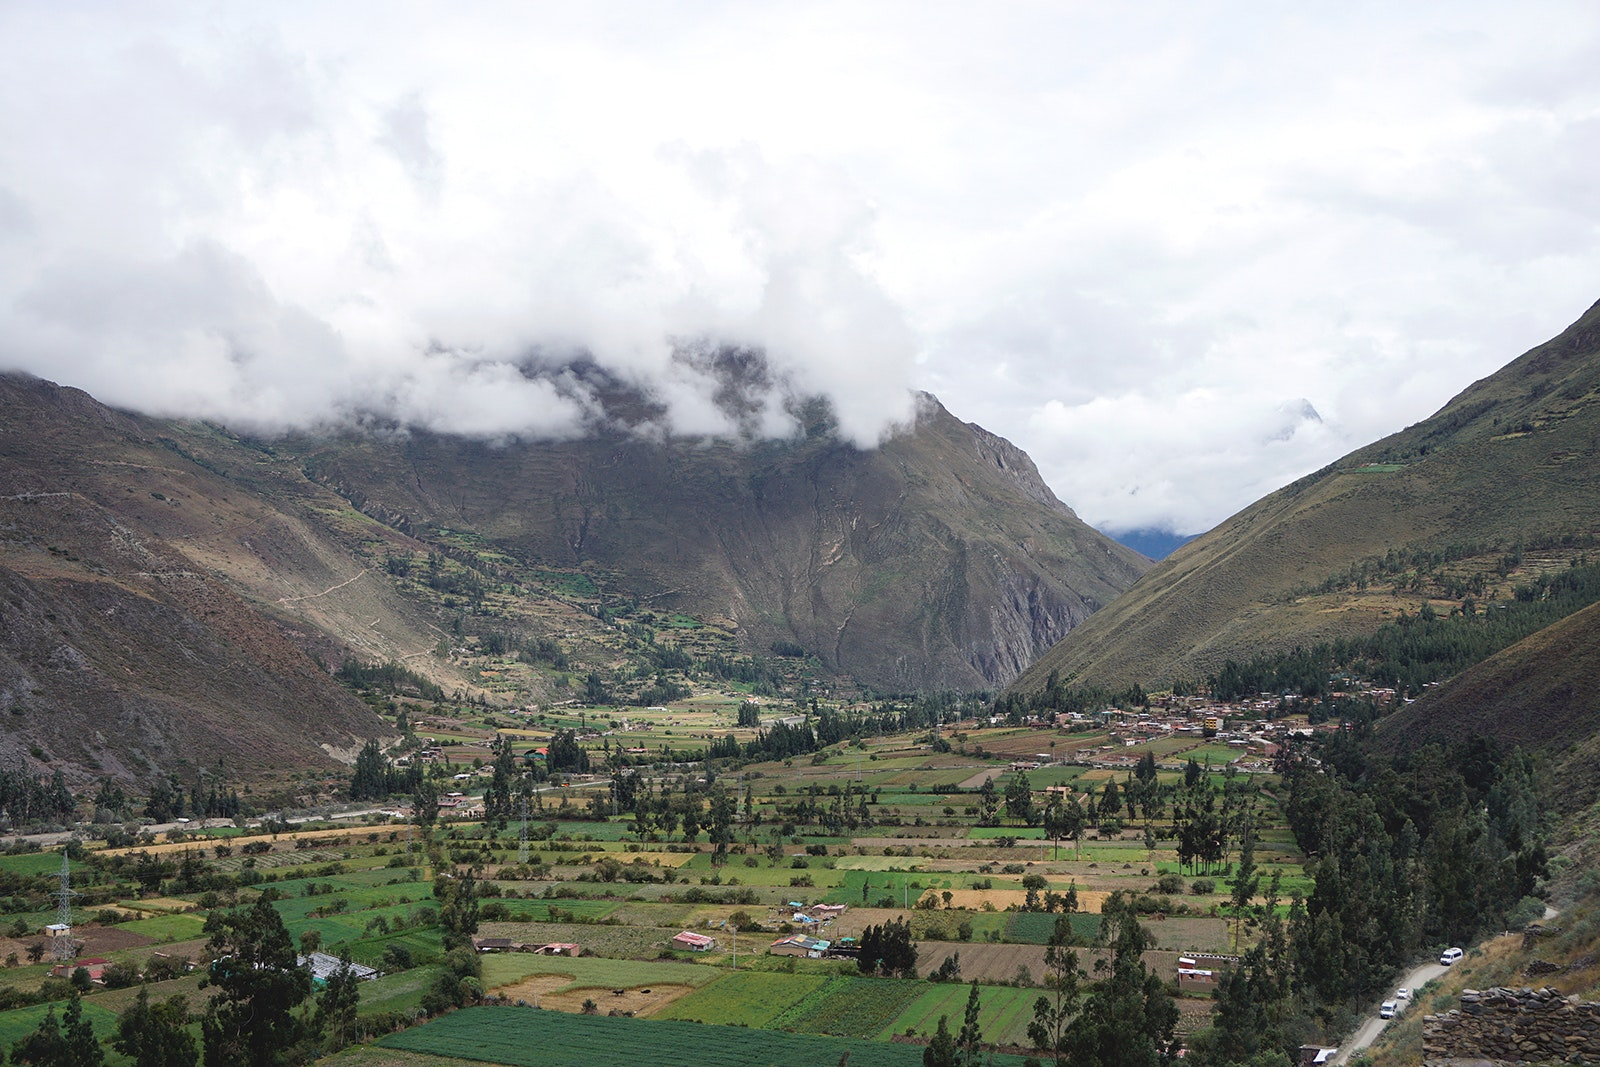 A view of the valley from Ollantaytambo, the starting point for the Inca Trail